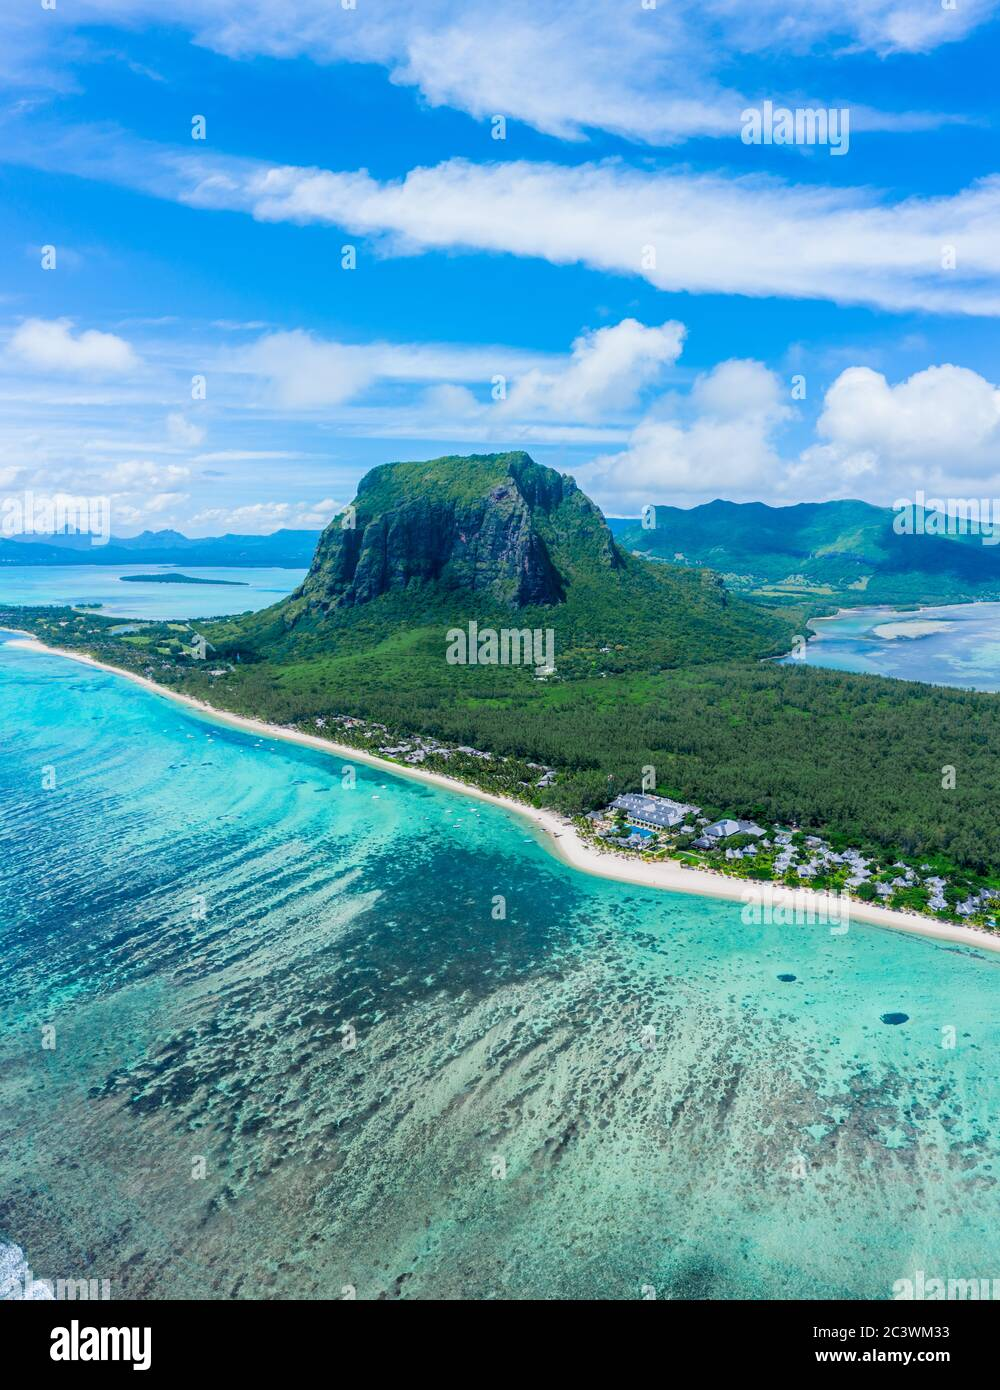 Aerial panoramic view of Mauritius island - Detail of Le Morne Brabant mountain with underwater waterfall perspective optic illusion - Wanderlust and Stock Photo